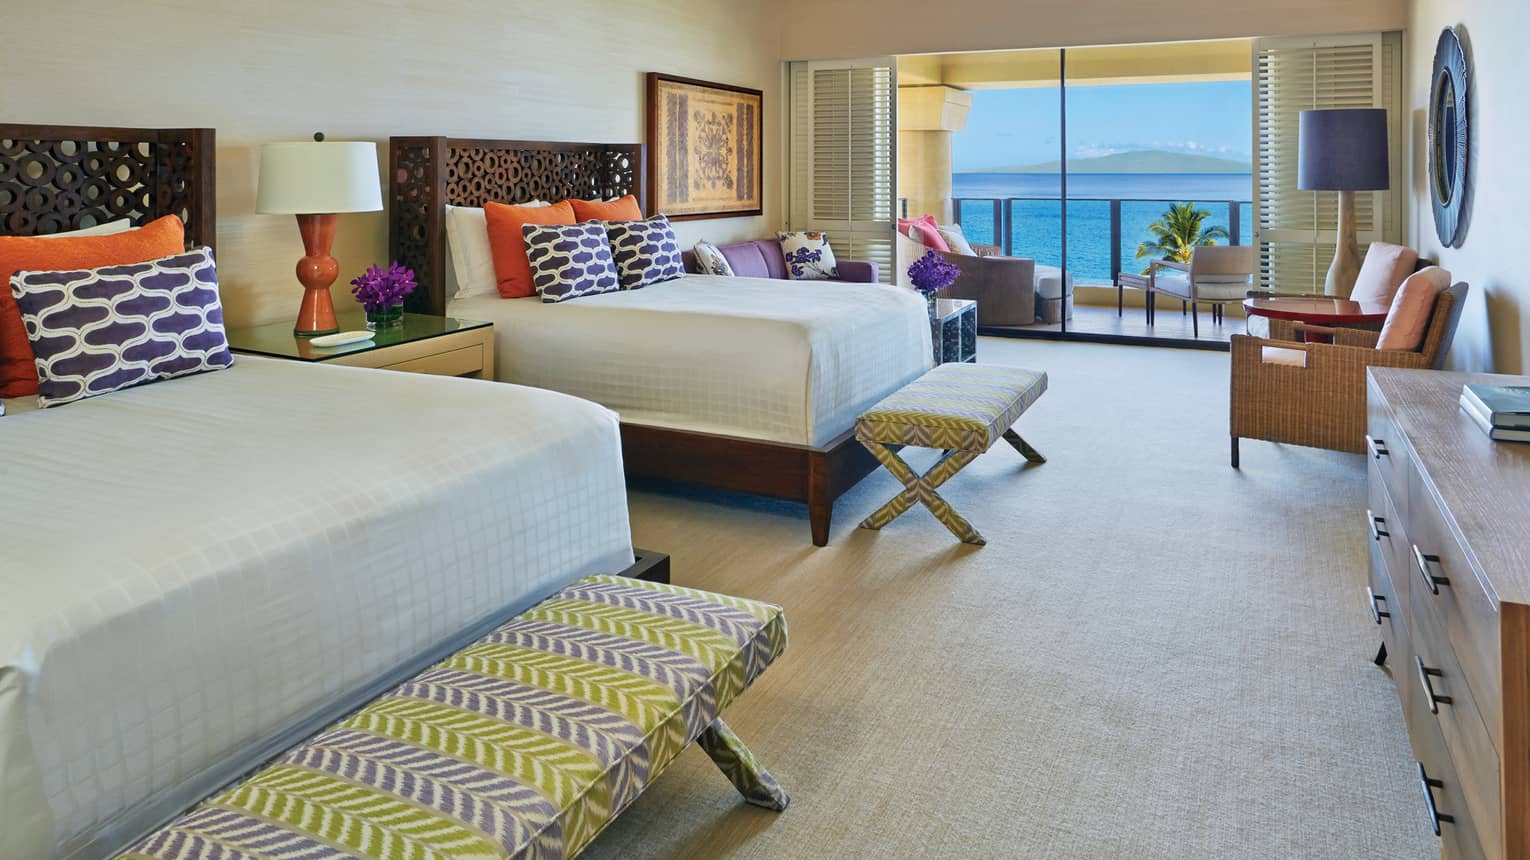 Maile Suite double bedroom with view onto the ocean and colourful bedding